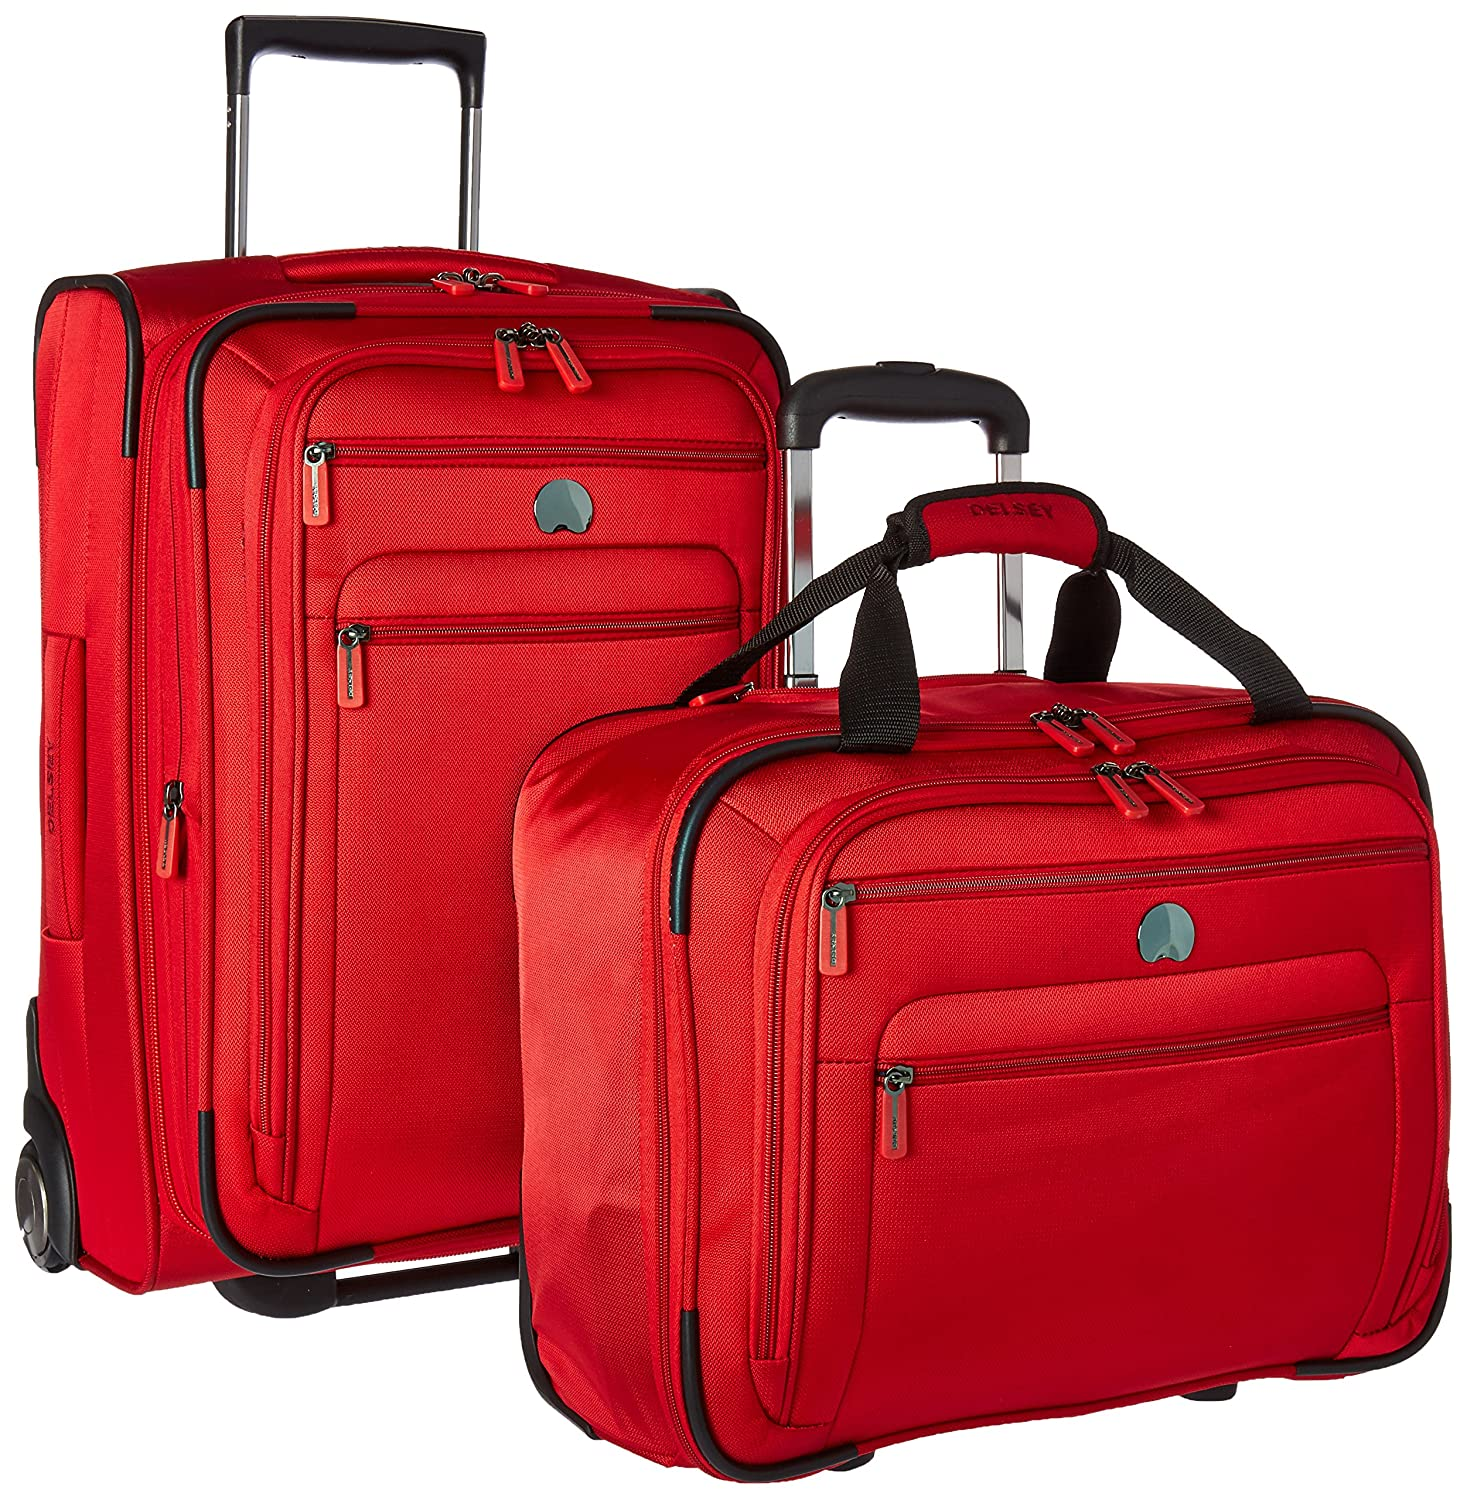 My suitcase went to Rio de Janeiro and back, almost 10, miles total, and up and down over 4 flights of stairs each direction with me banging it on almost every step the whole way. The only